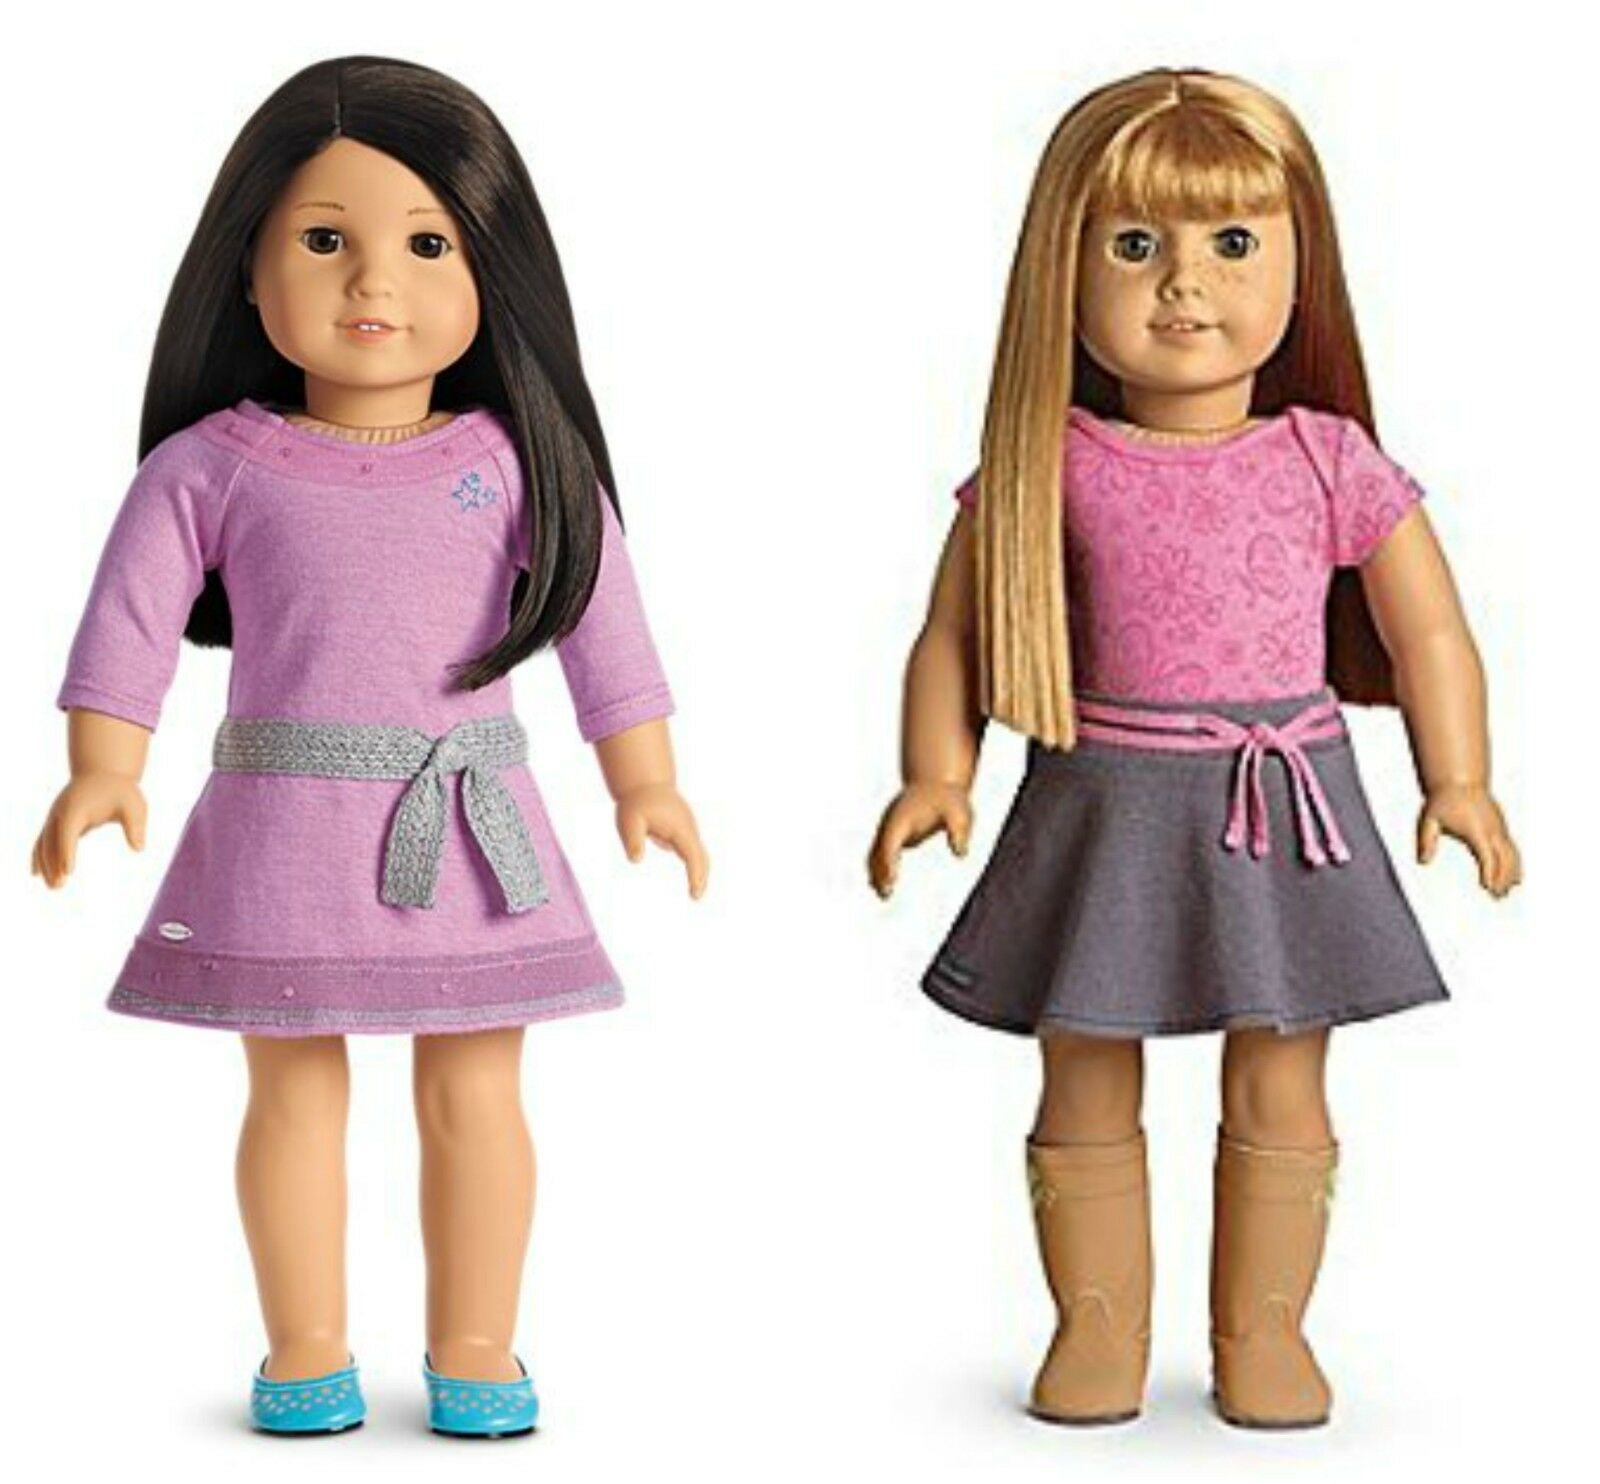 American Girl Doll 2x Meet Outfits LILAC DRESS Set & True Spirit Outfit